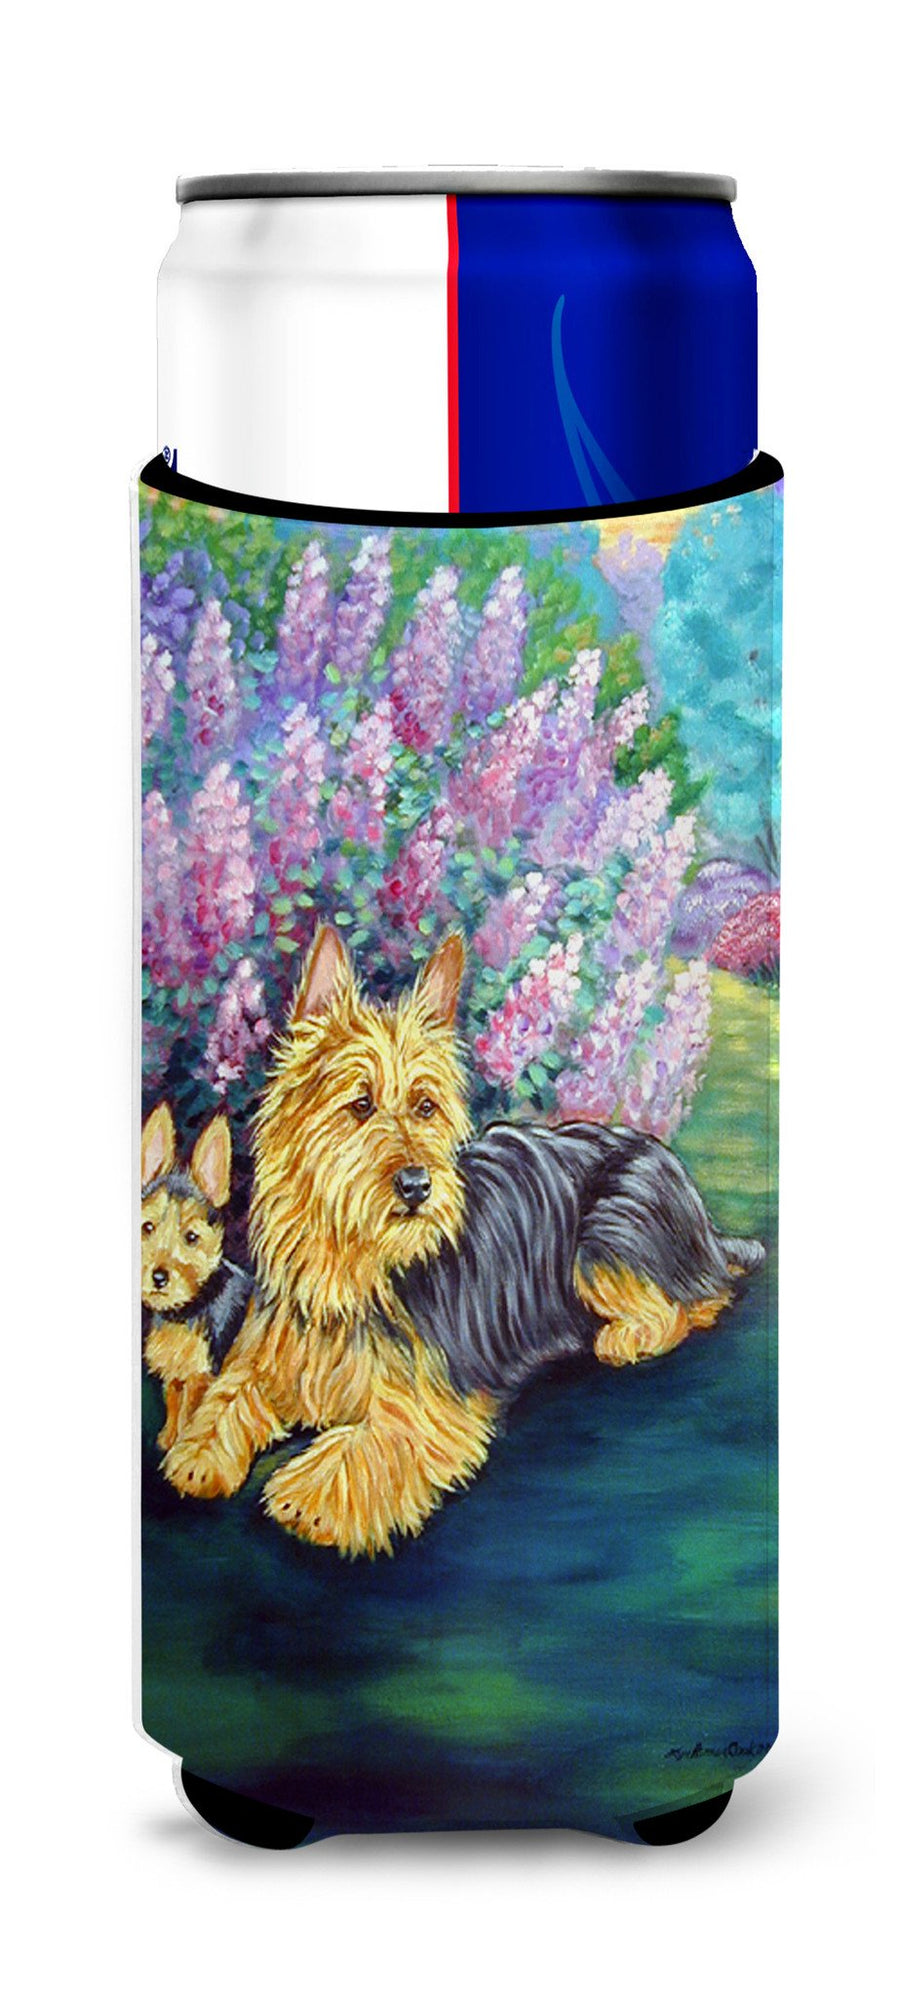 Australian Terrier and Puppy Ultra Beverage Insulators for slim cans 7209MUK - the-store.com